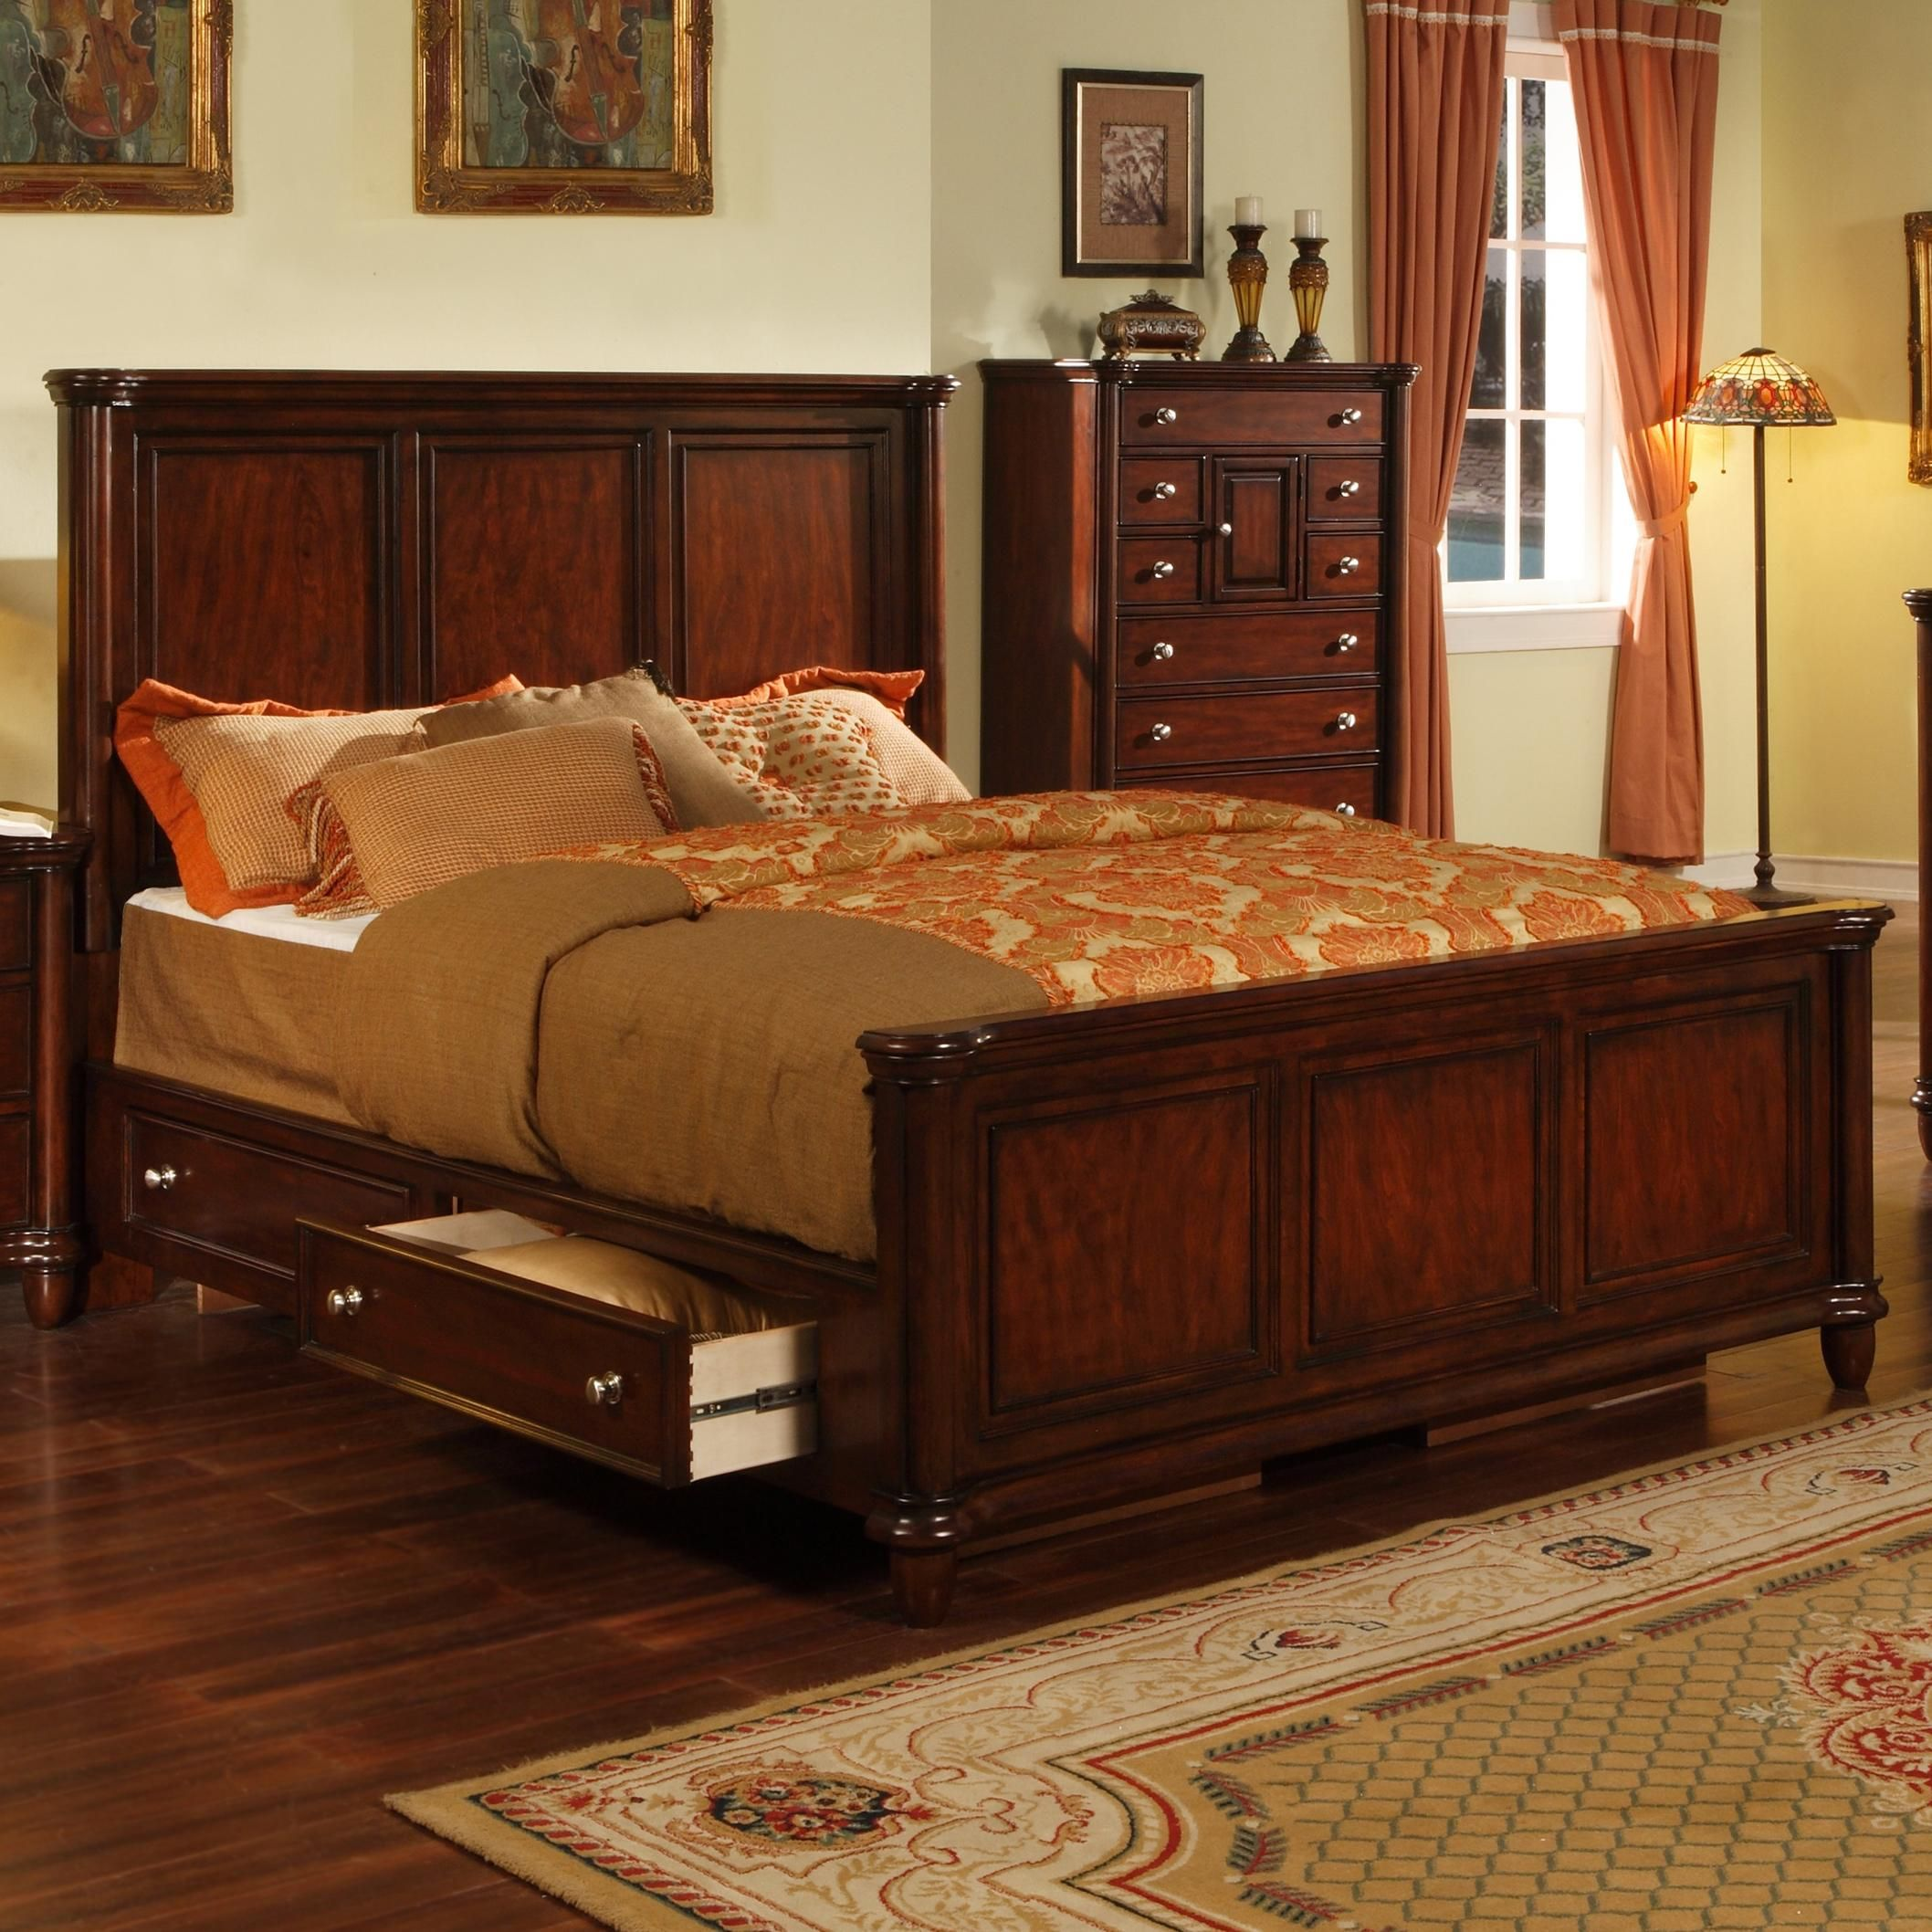 Hamilton Queen Bed With Drawer Rails By Elements Gorgeous #HudsonsFurniture